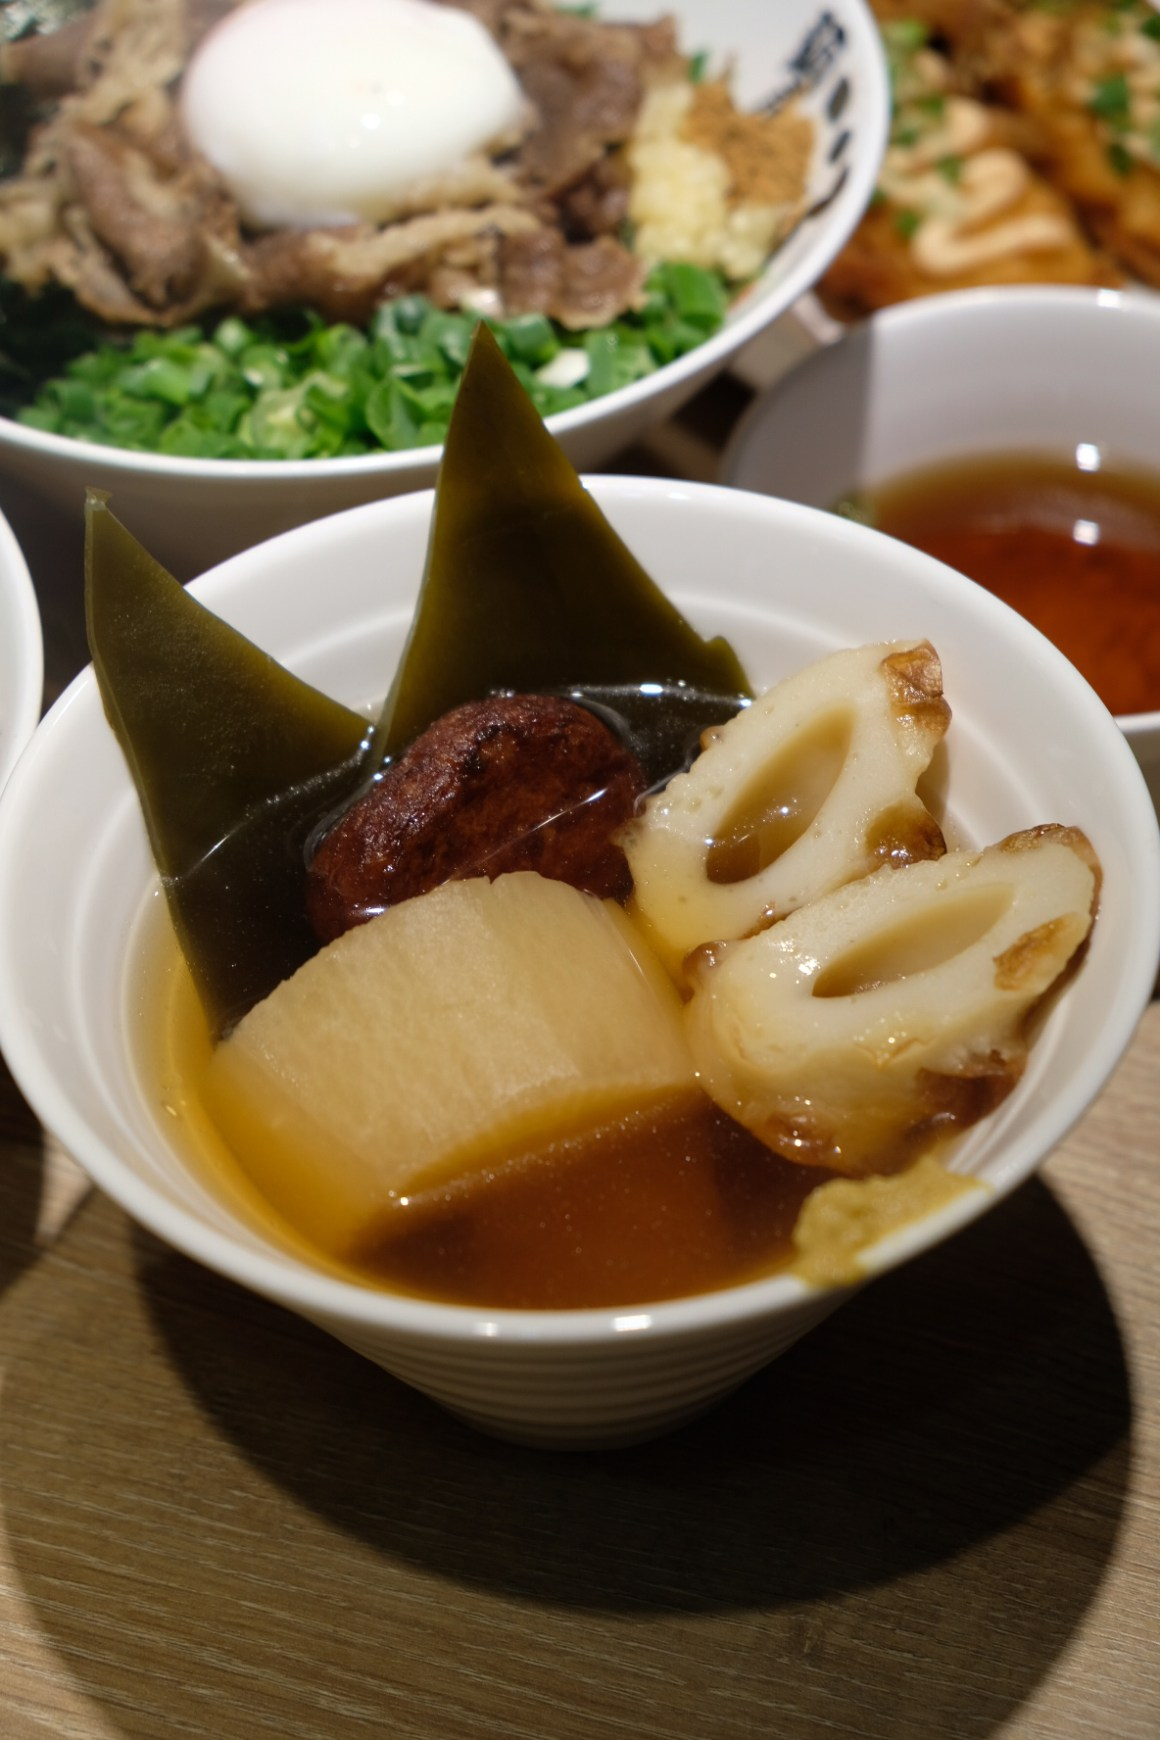 Menya Kokoro New Items - Oden ($4.80)